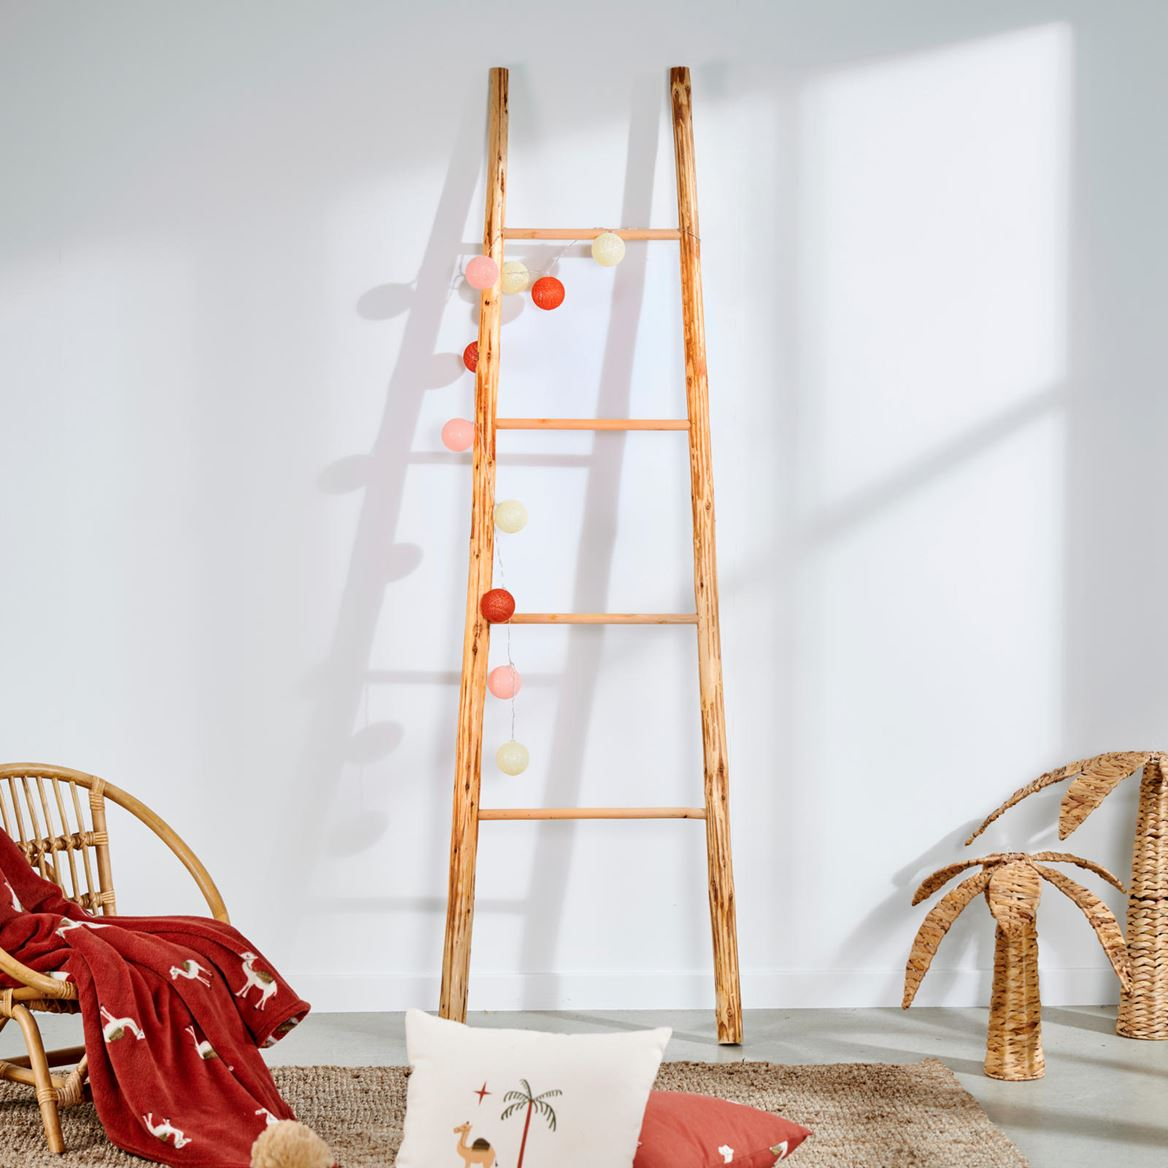 FRED Ladder naturel H 176 x B 55 x D 3 cm_fred-ladder-naturel-h-176-x-b-55-x-d-3-cm